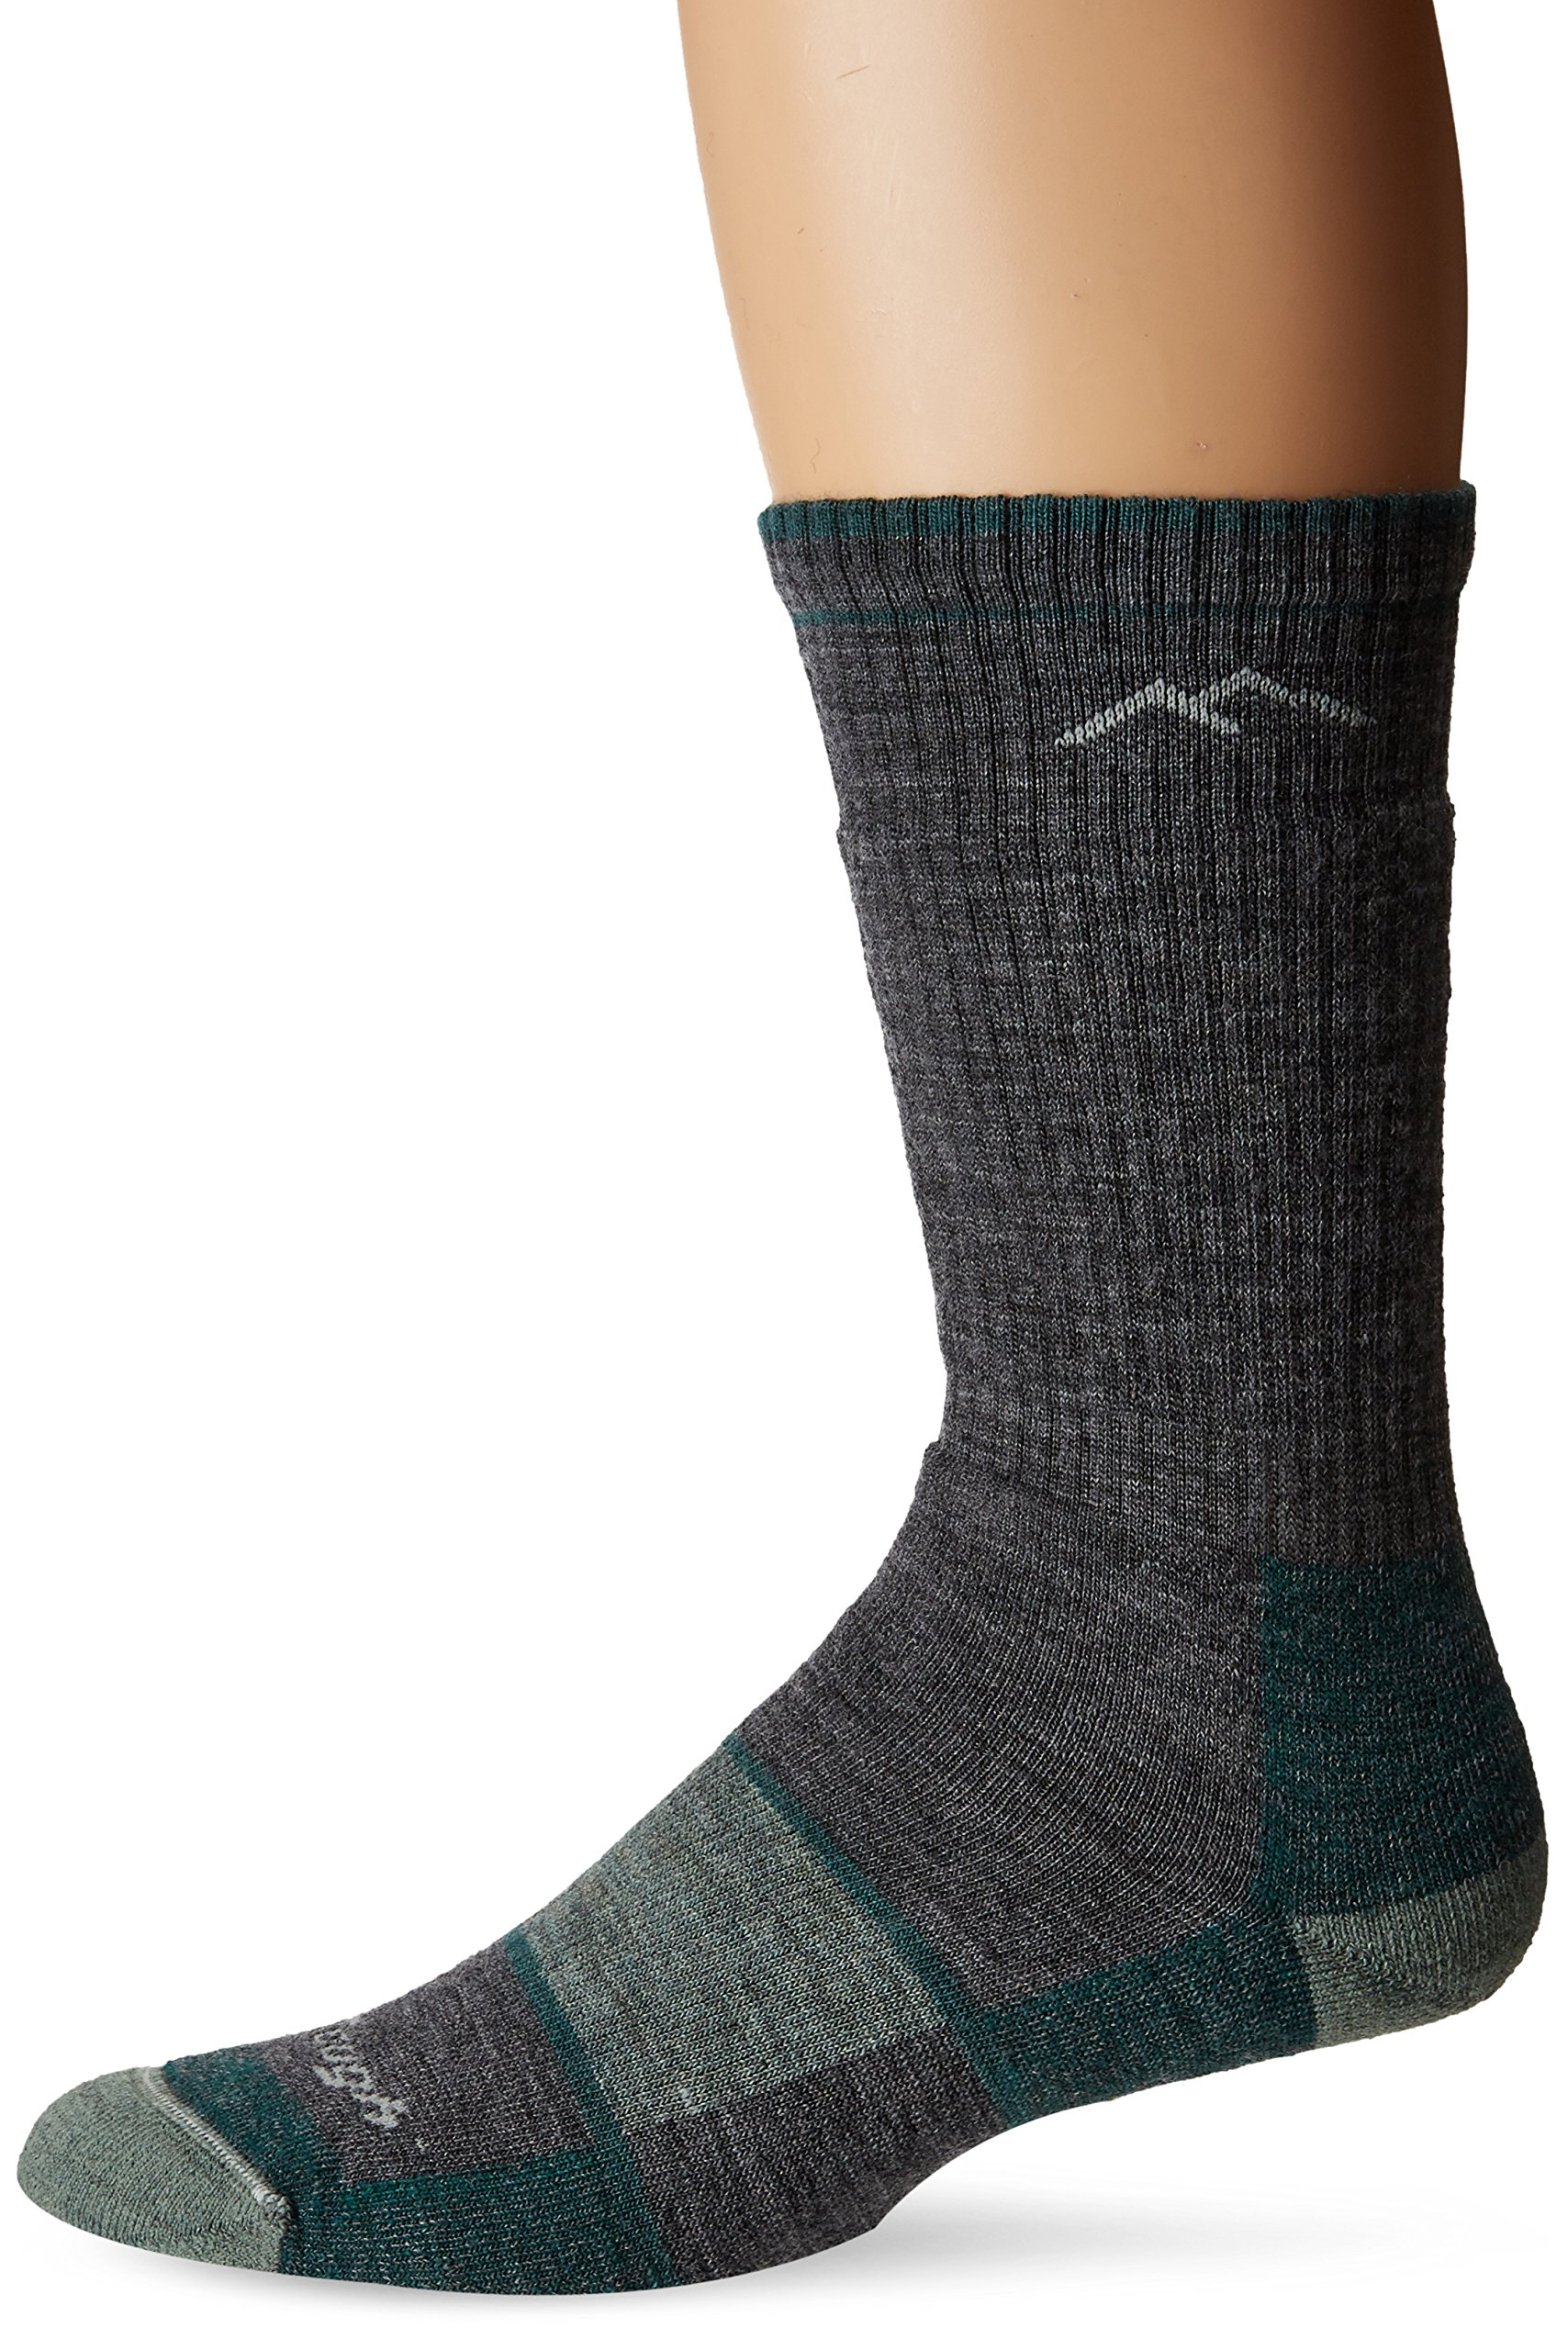 Darn Tough Vermont Women's Merino Wool Boot Socks Full Cushion Slate LG (US 10-11.5) by Darn Tough